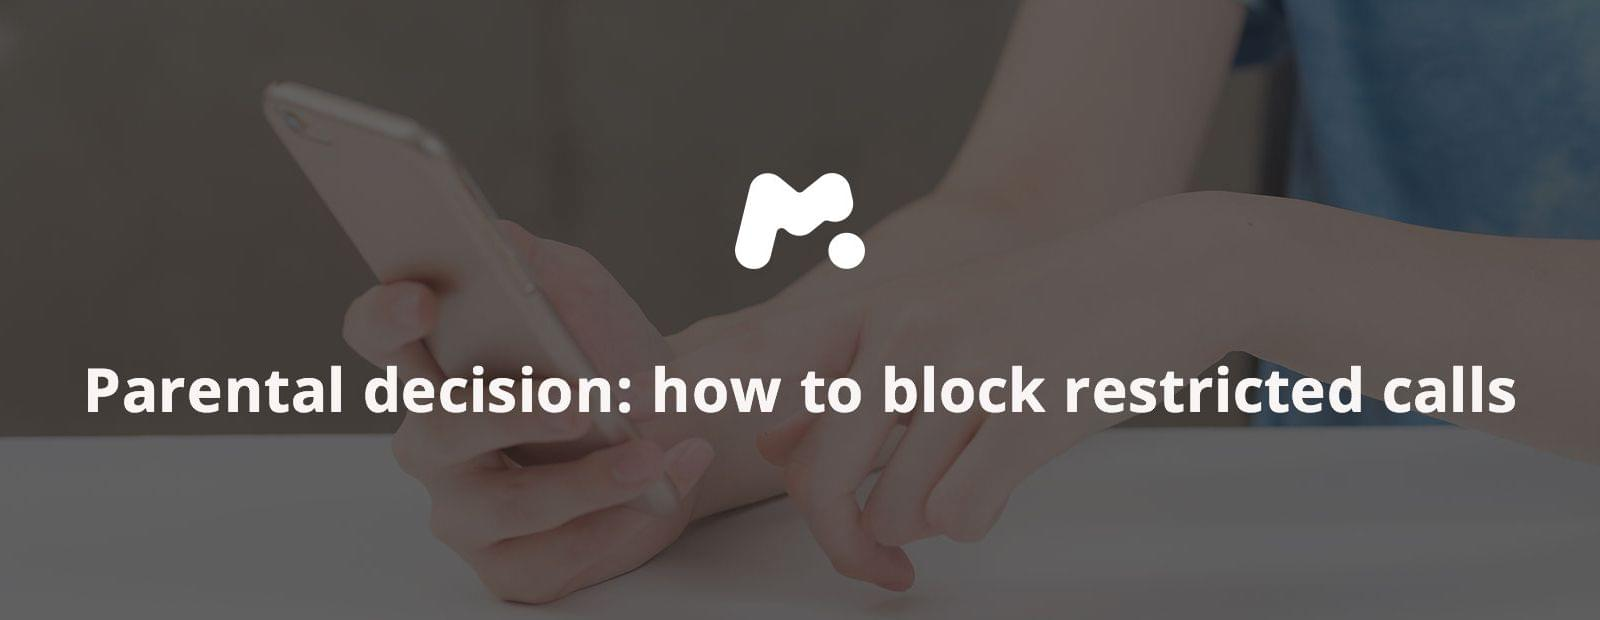 Parental decision: how to block restricted calls